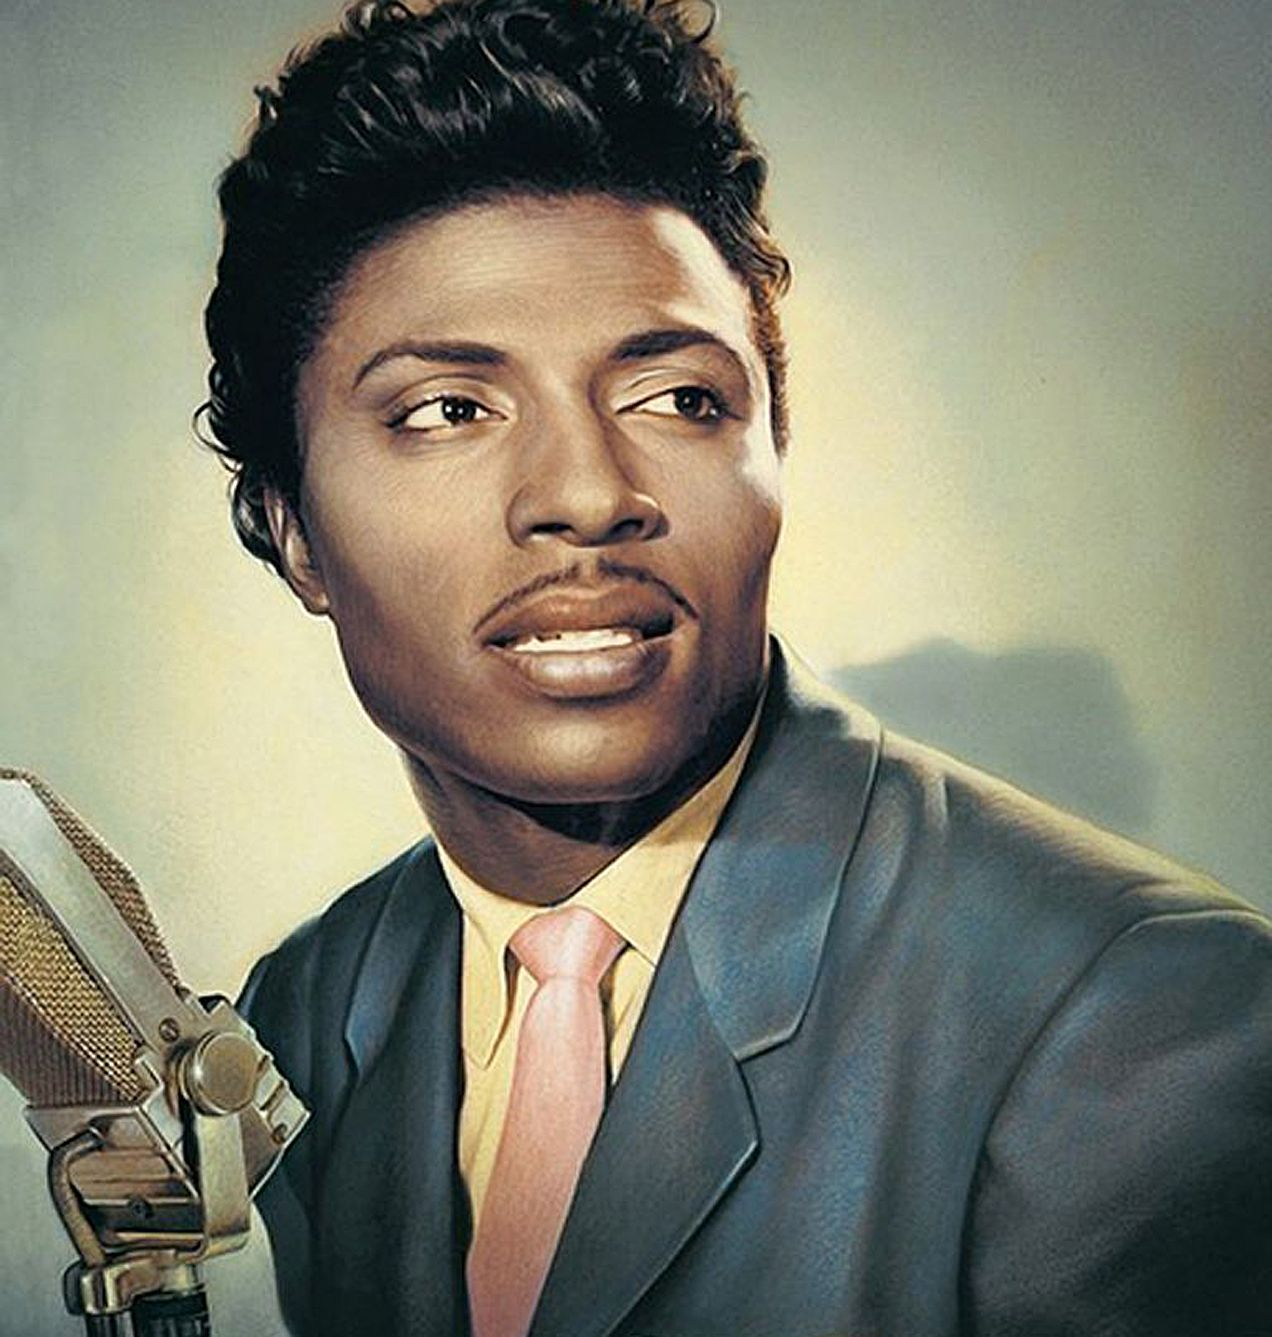 Little Richard In Concert 1965 Past Daily Backstage Weekend Tribute Edition Little Richard 1932 2020 Past Daily News History Music And An Enorm Rock And Roll Richard Arto Lindsay